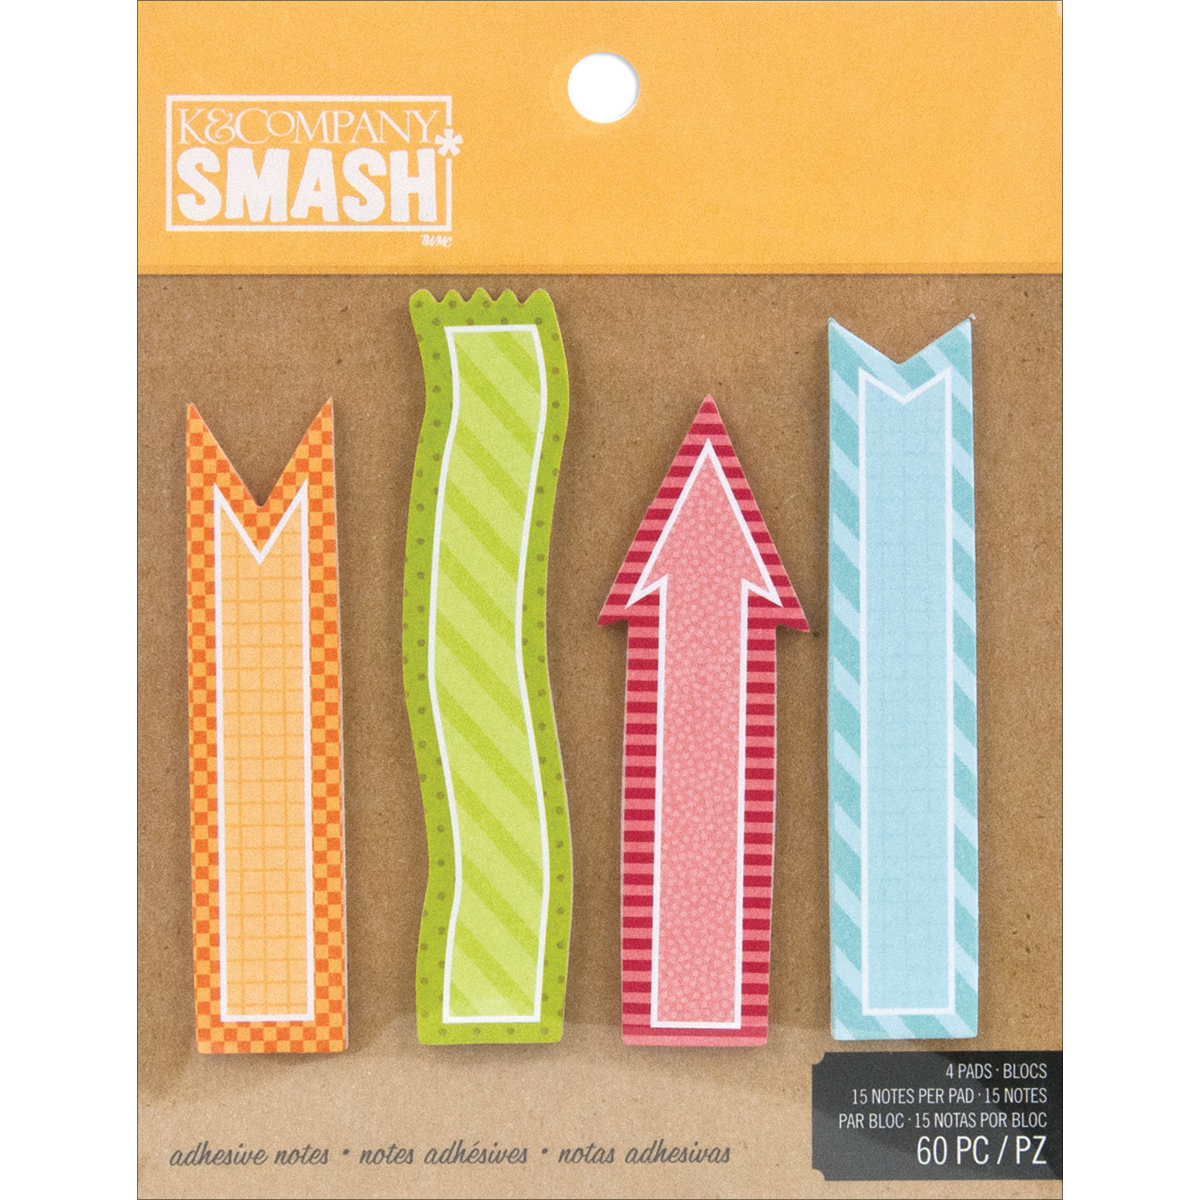 SMASH Simple Sticky Note Pad 60 Sheets-4 Pads 15 Per Pad